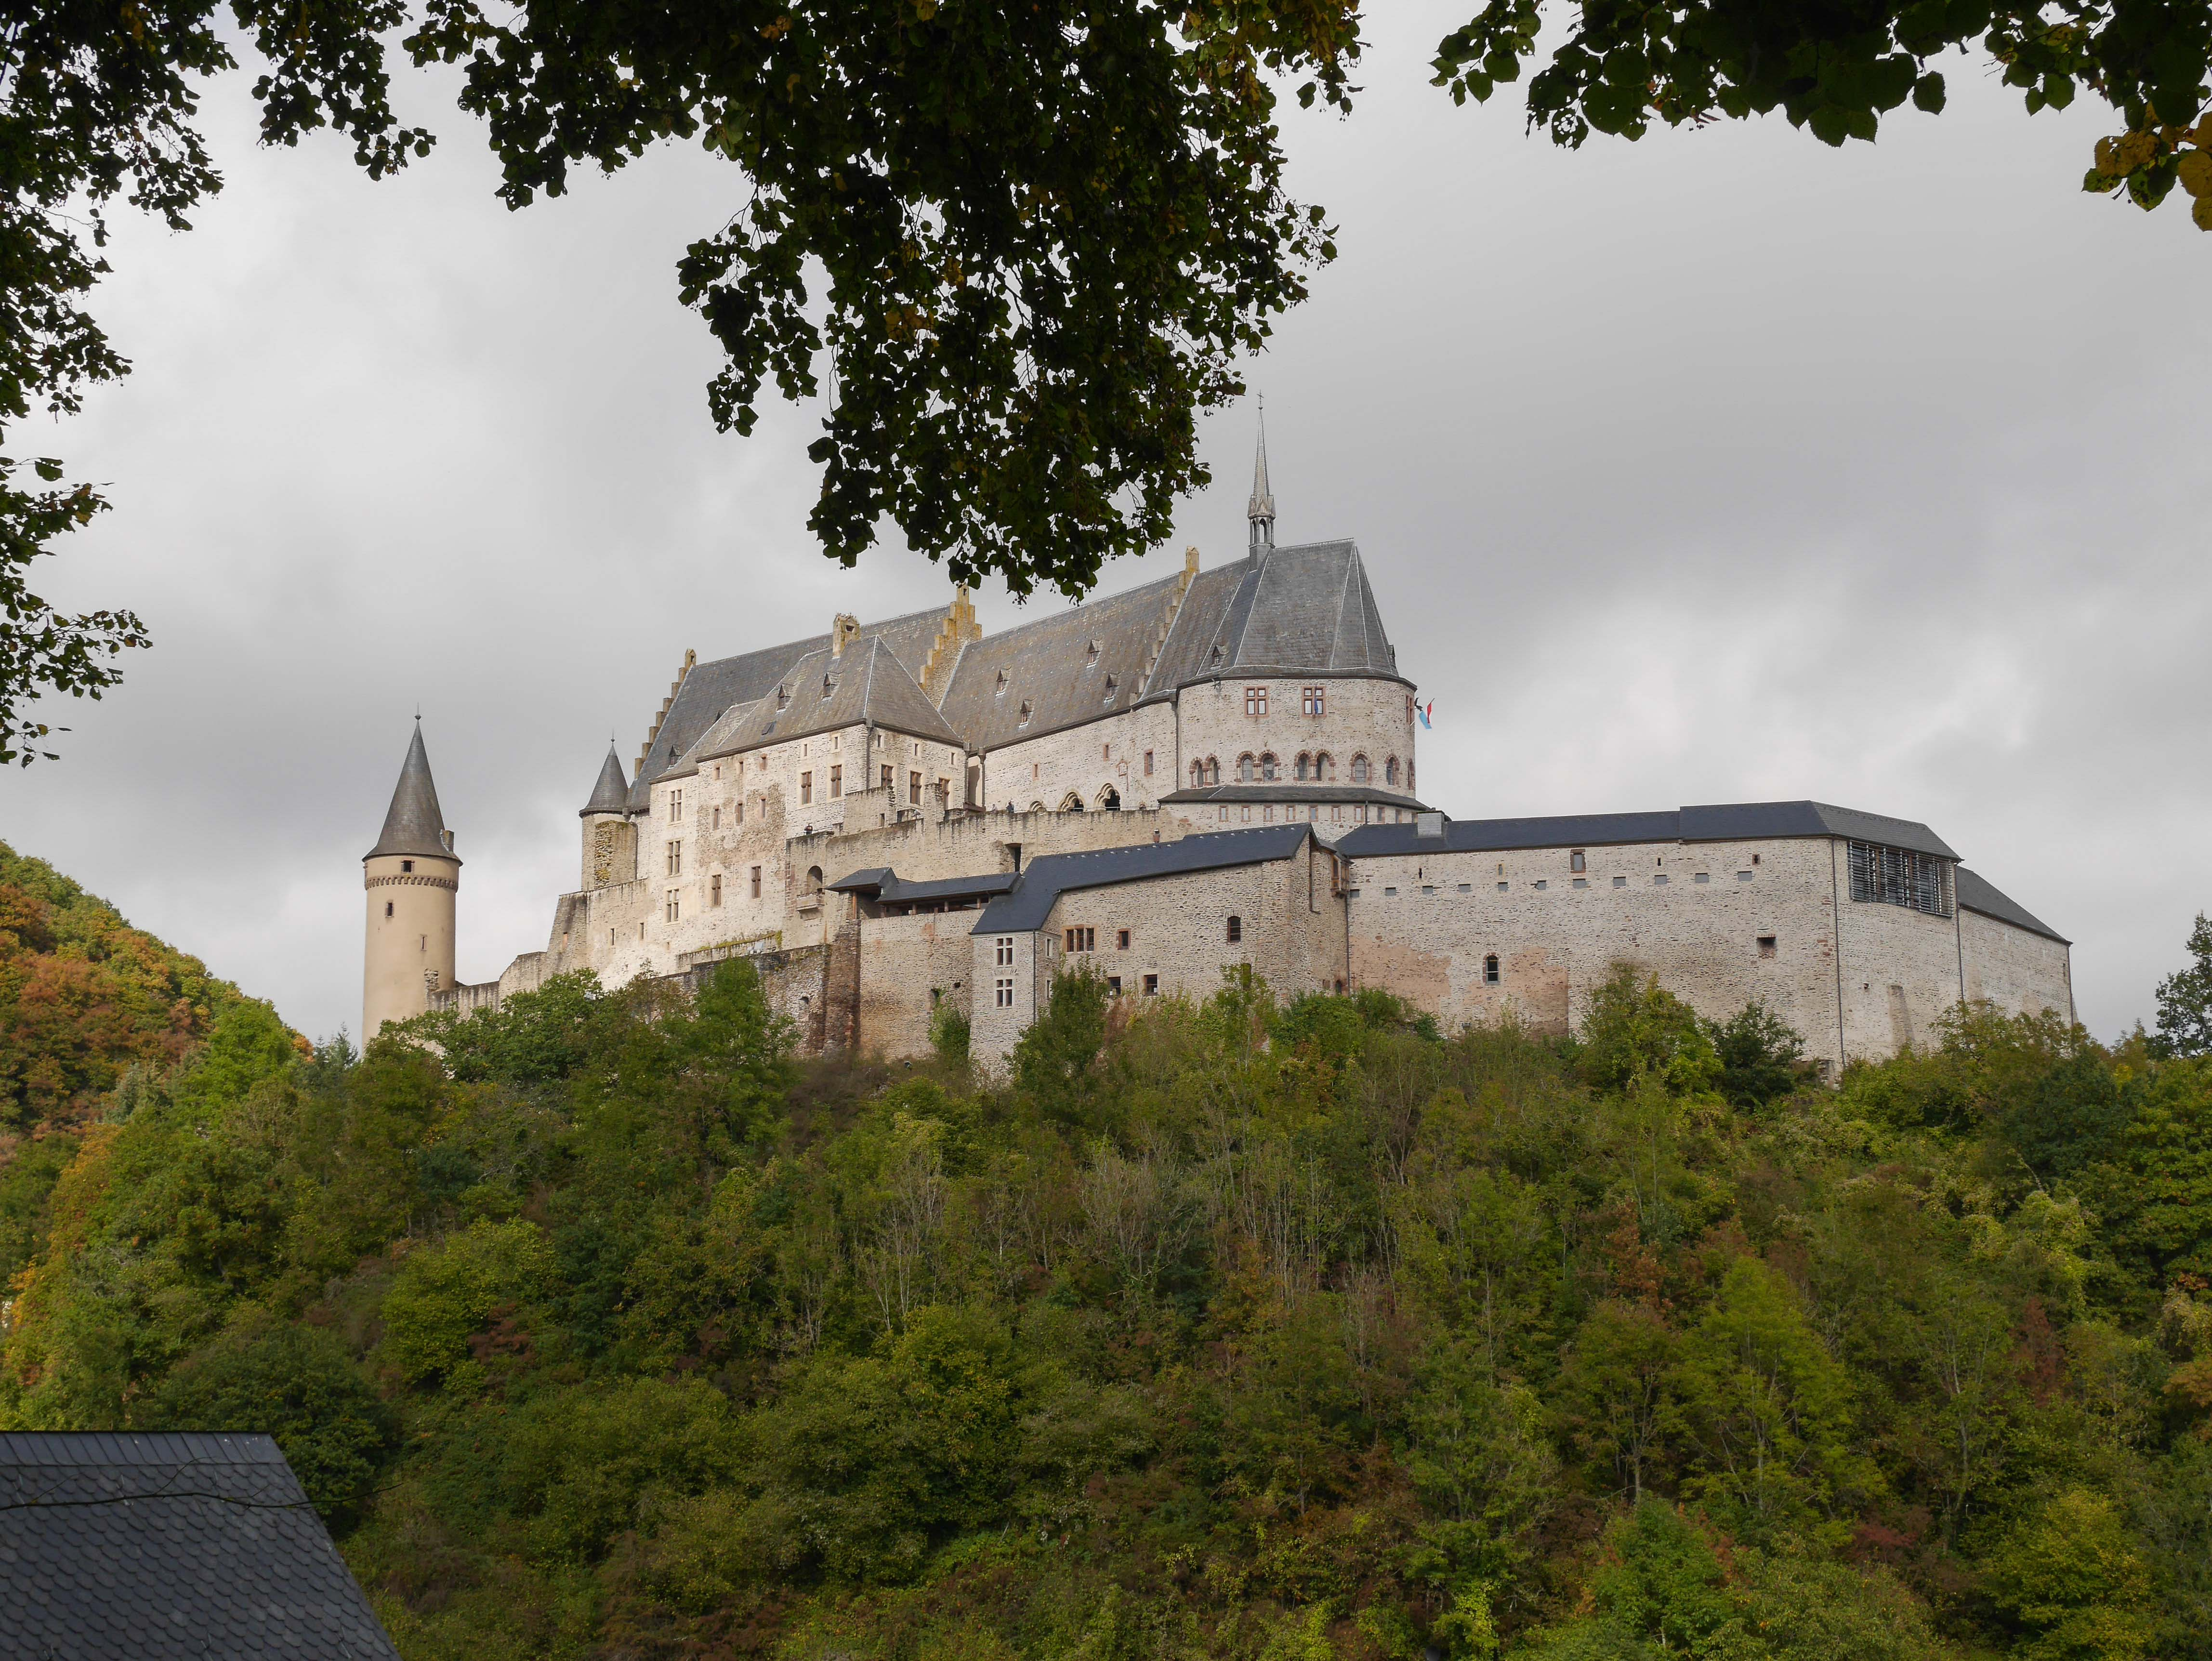 Have you ever been to Luxembourg? Why not?